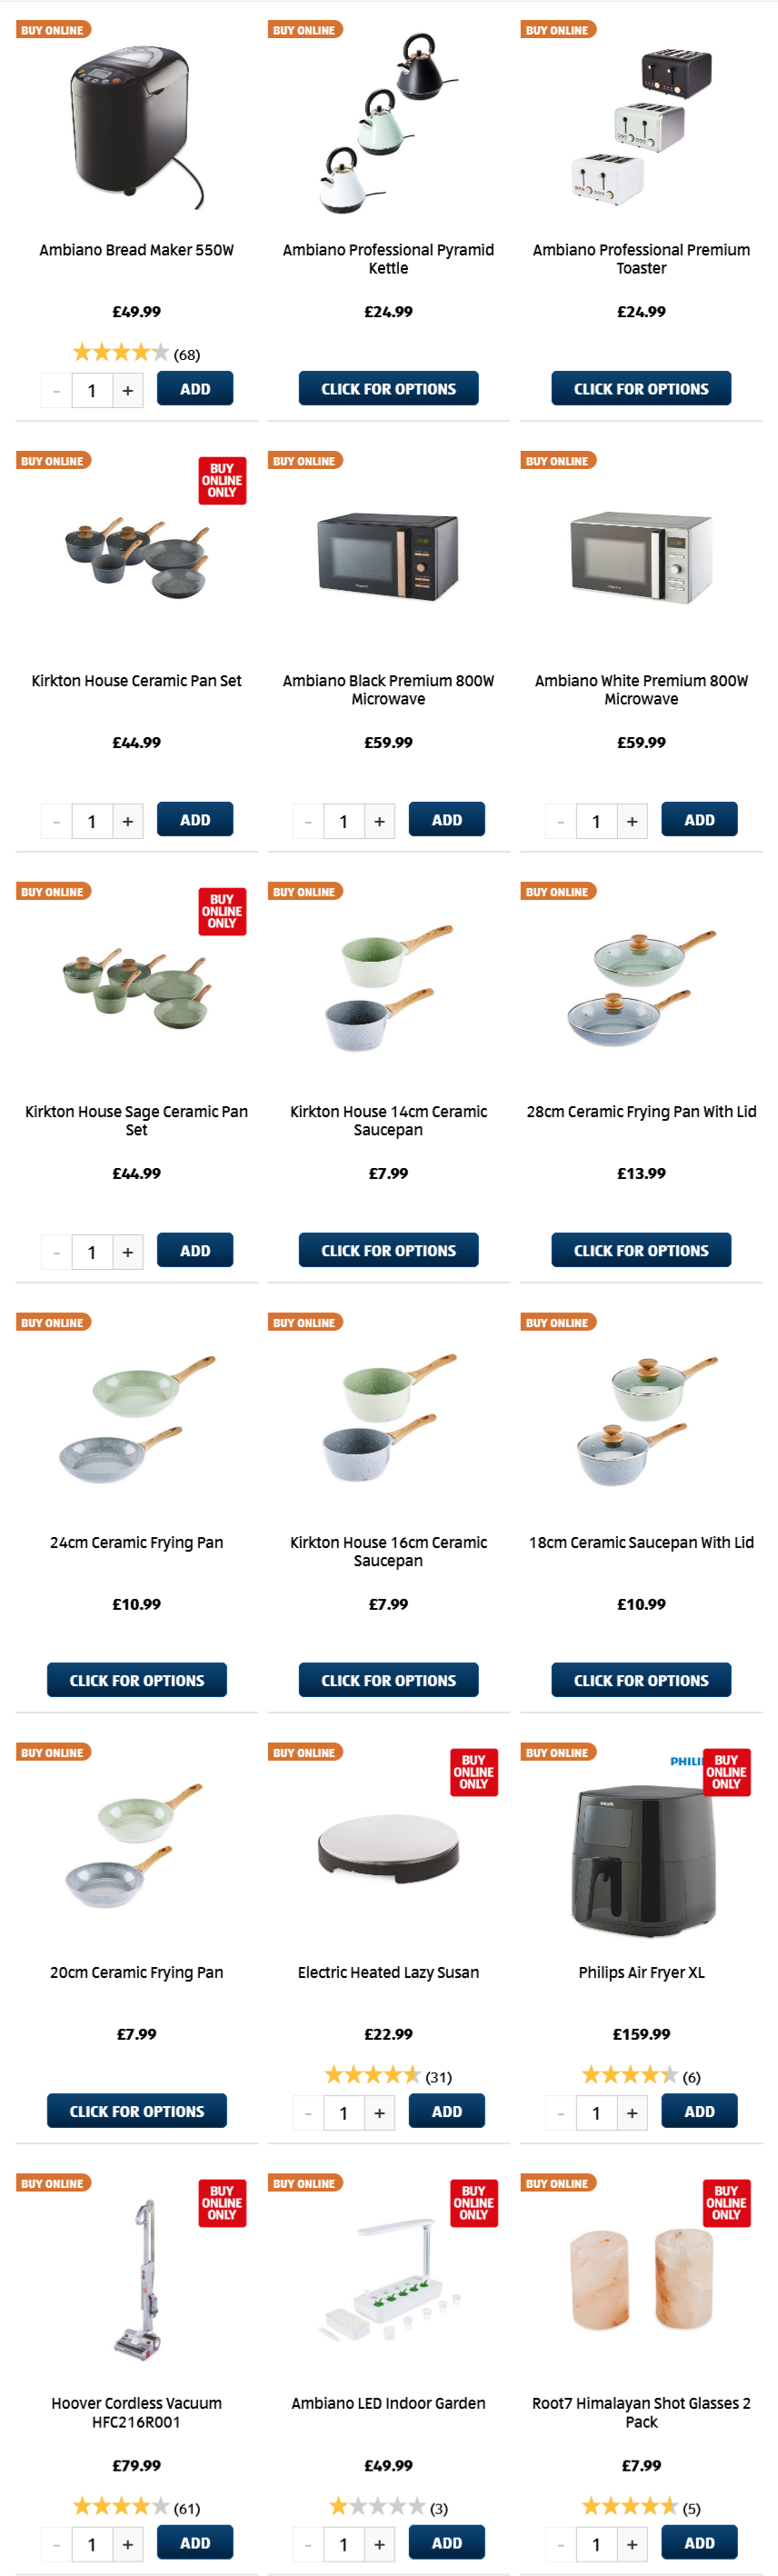 ALDI Sunday Offers Kitchen 28th March 2021